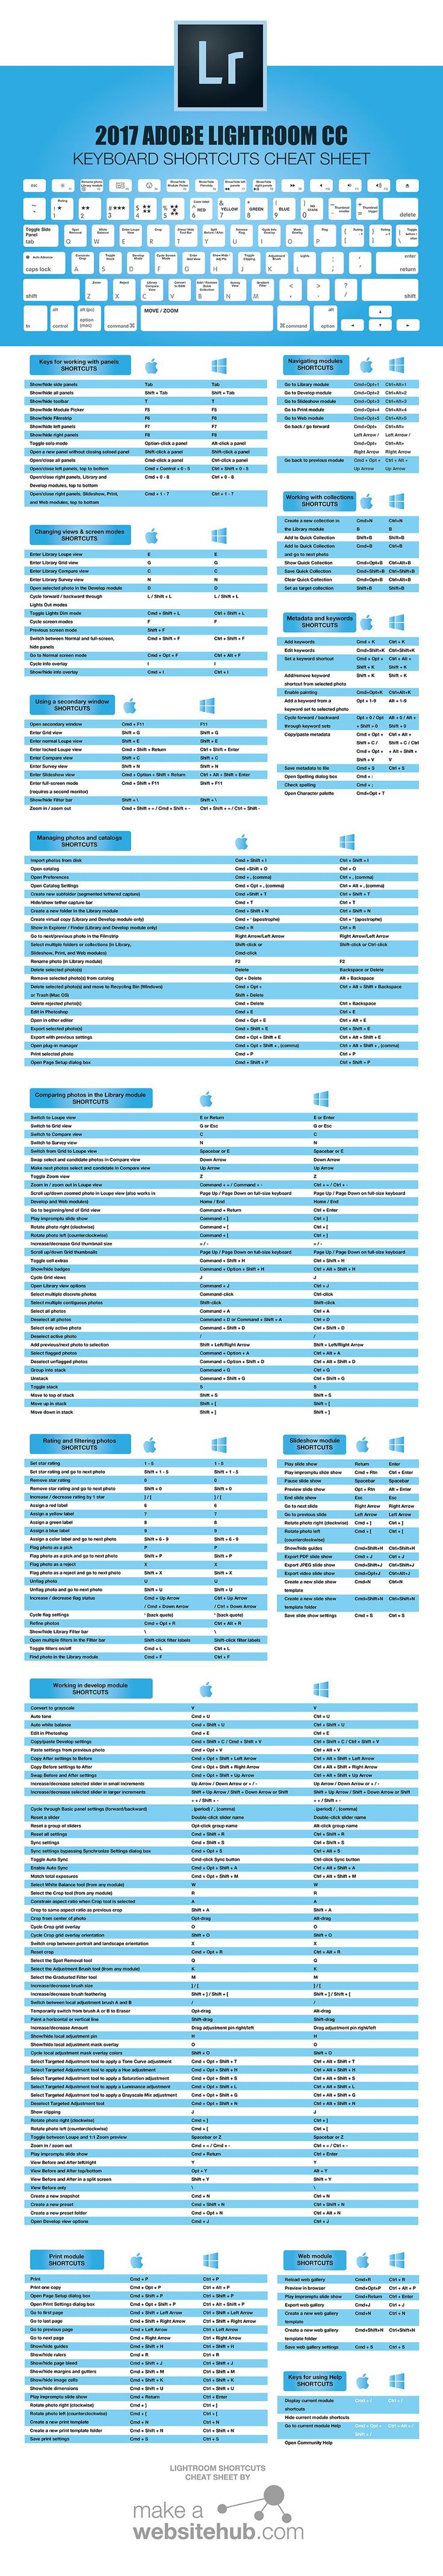 Last Updated 23rd May 2017. (Update to main image, PDF download and Hi-Res PDF) After many request through email and on social networks, I have finally been able to find time to create the Adobe Lightroom Keyboard Shortcuts infographic, that so many people asked for....